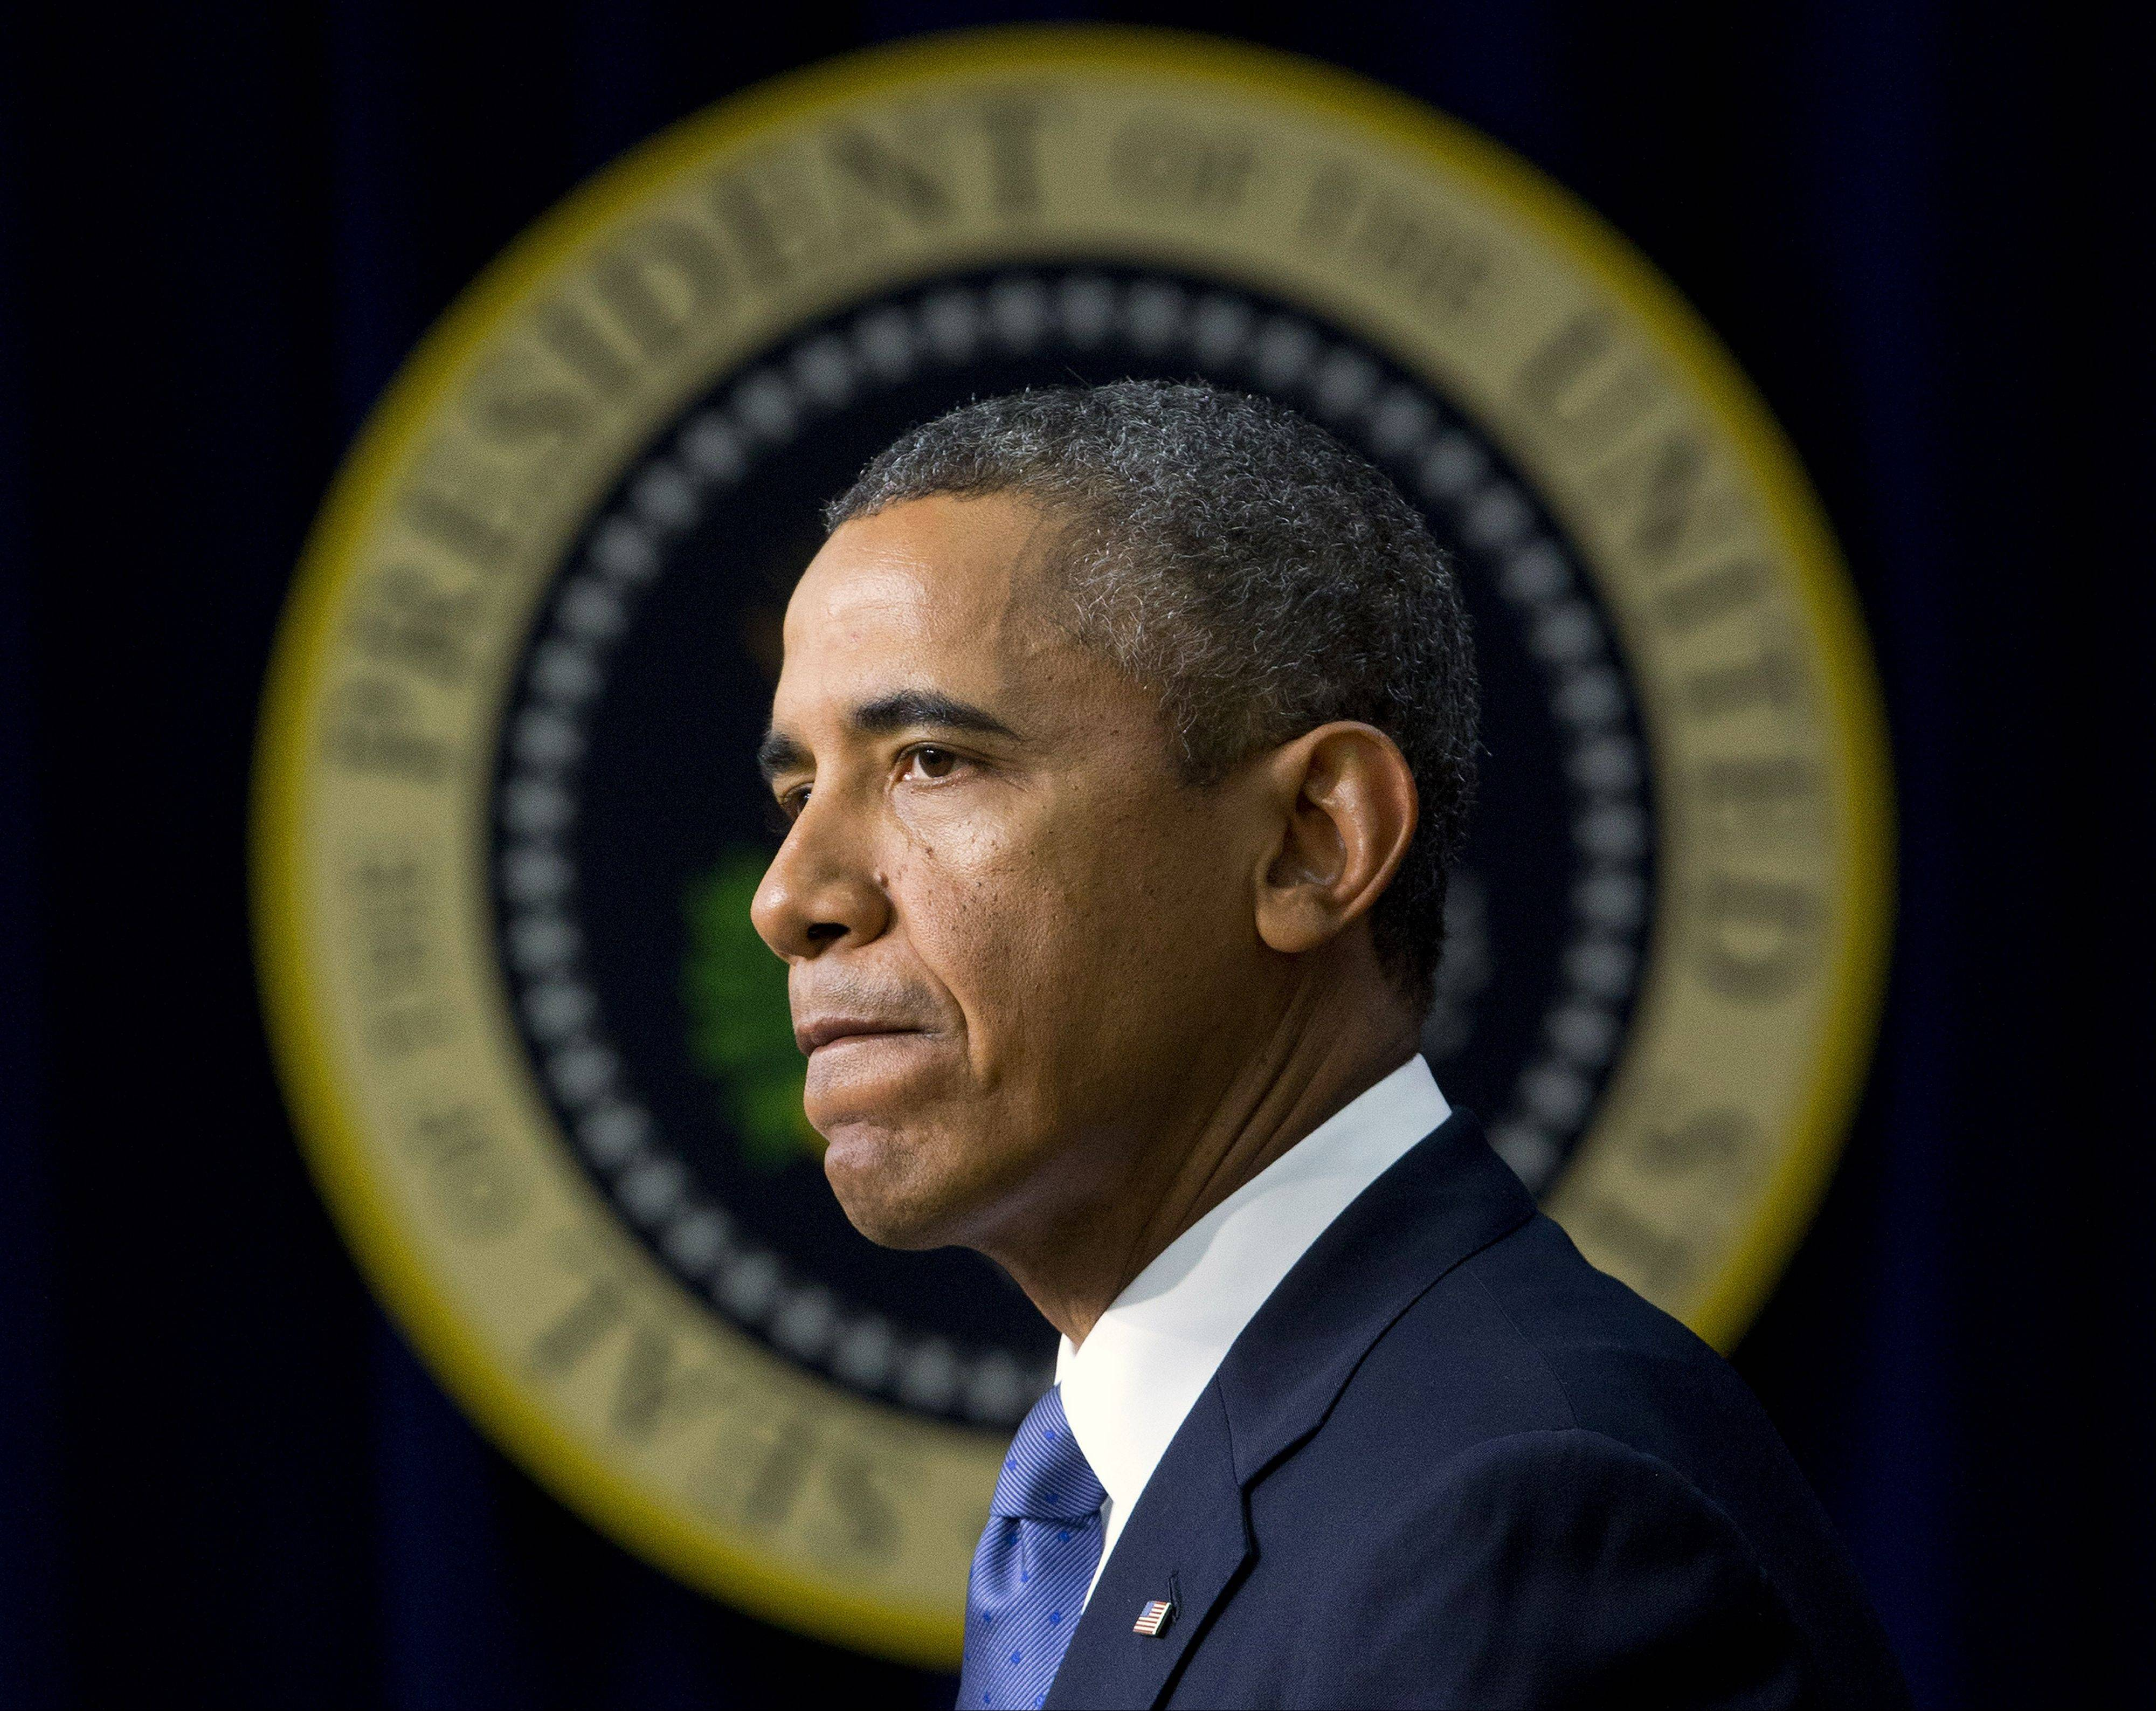 President Barack Obama, facing a budget showdown with Congress, is pushing his economic agenda to some of the nation�s top corporate executives today while cautioning Republicans not to precipitate a government shutdown or an unprecedented debt default.